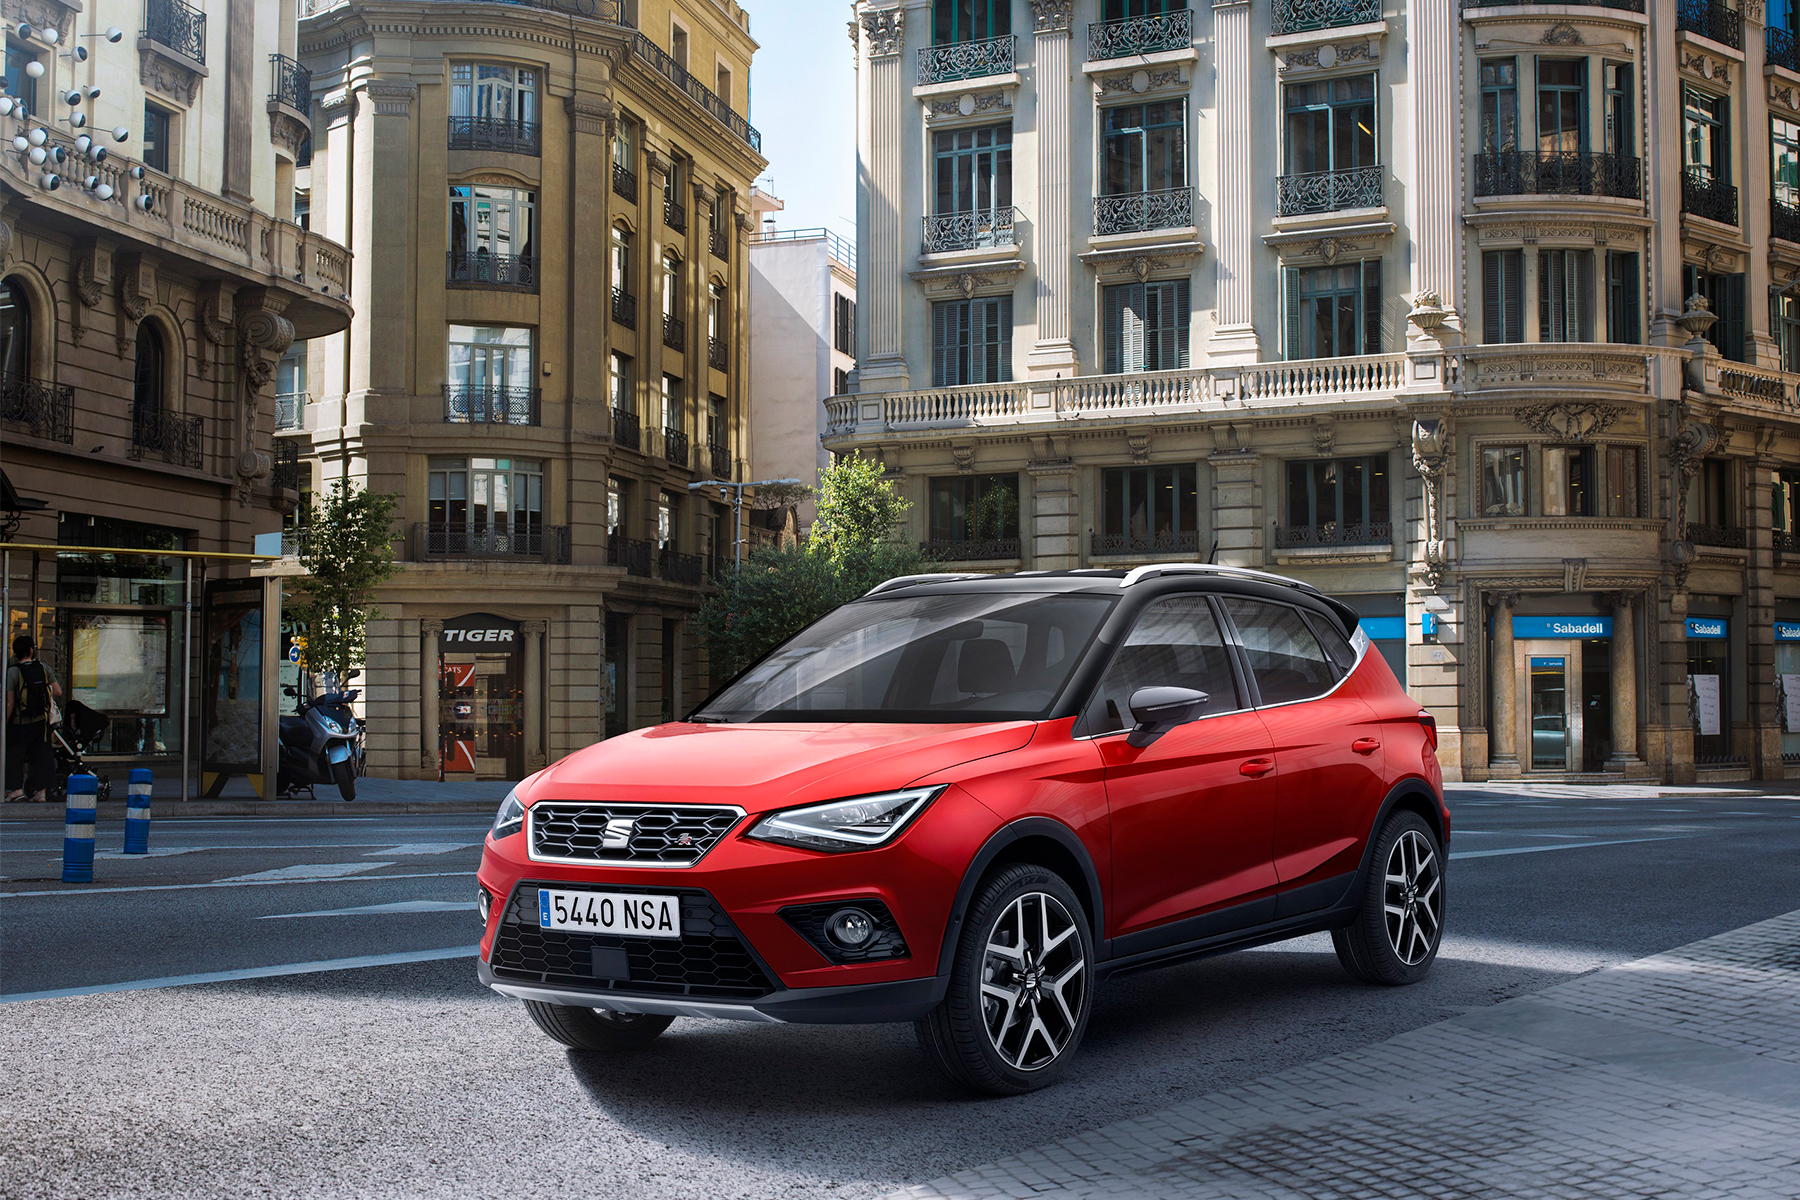 seat arona fr 1 0 tsi 115 dsg wintonsworld review 2018. Black Bedroom Furniture Sets. Home Design Ideas